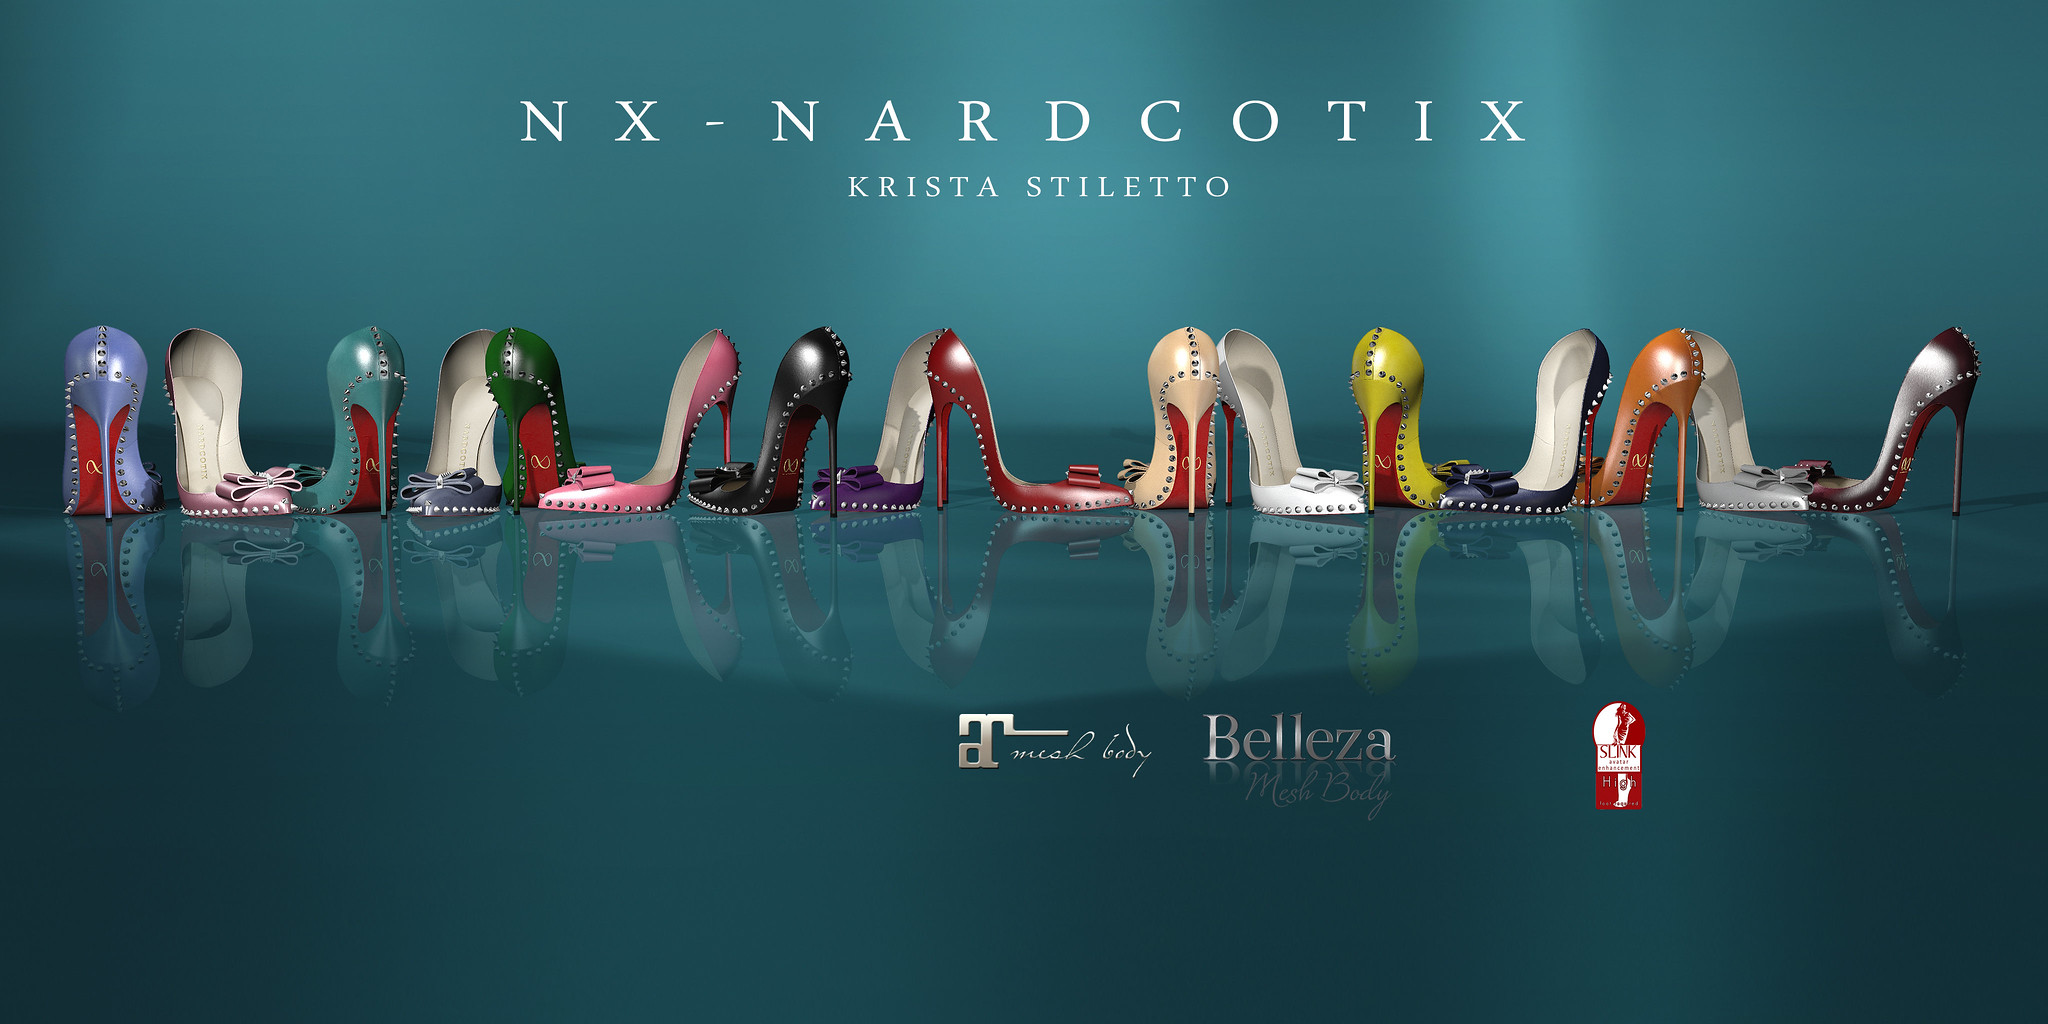 NX-Nardcotix Krista Stiletto